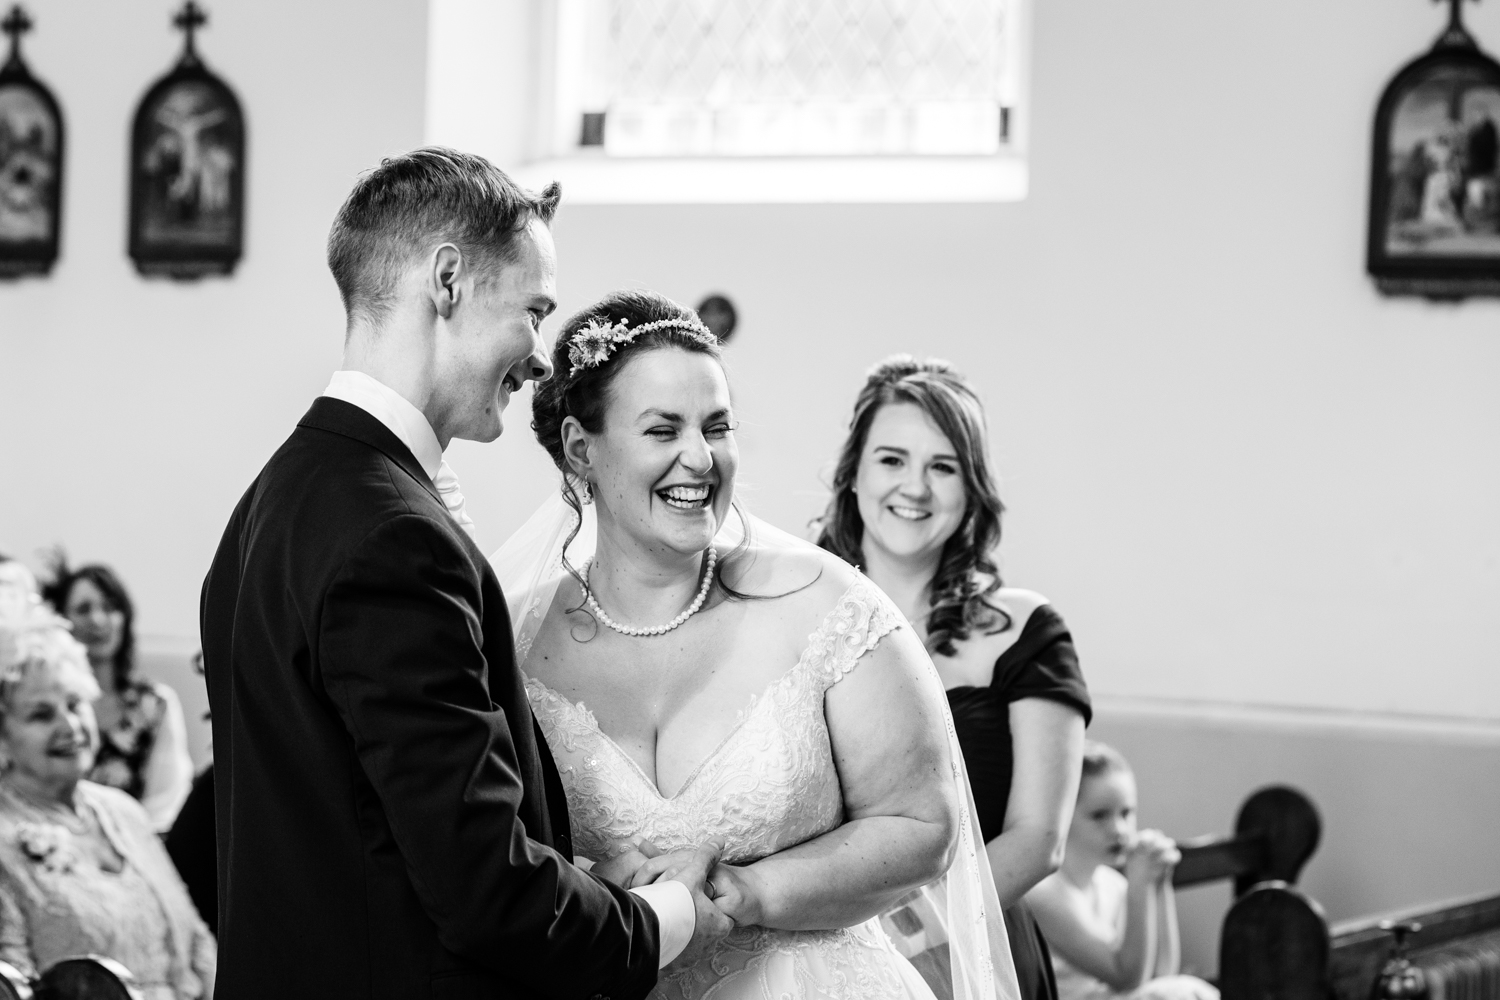 Lancashire-wedding-photographer-adele-and-alex-066.jpg